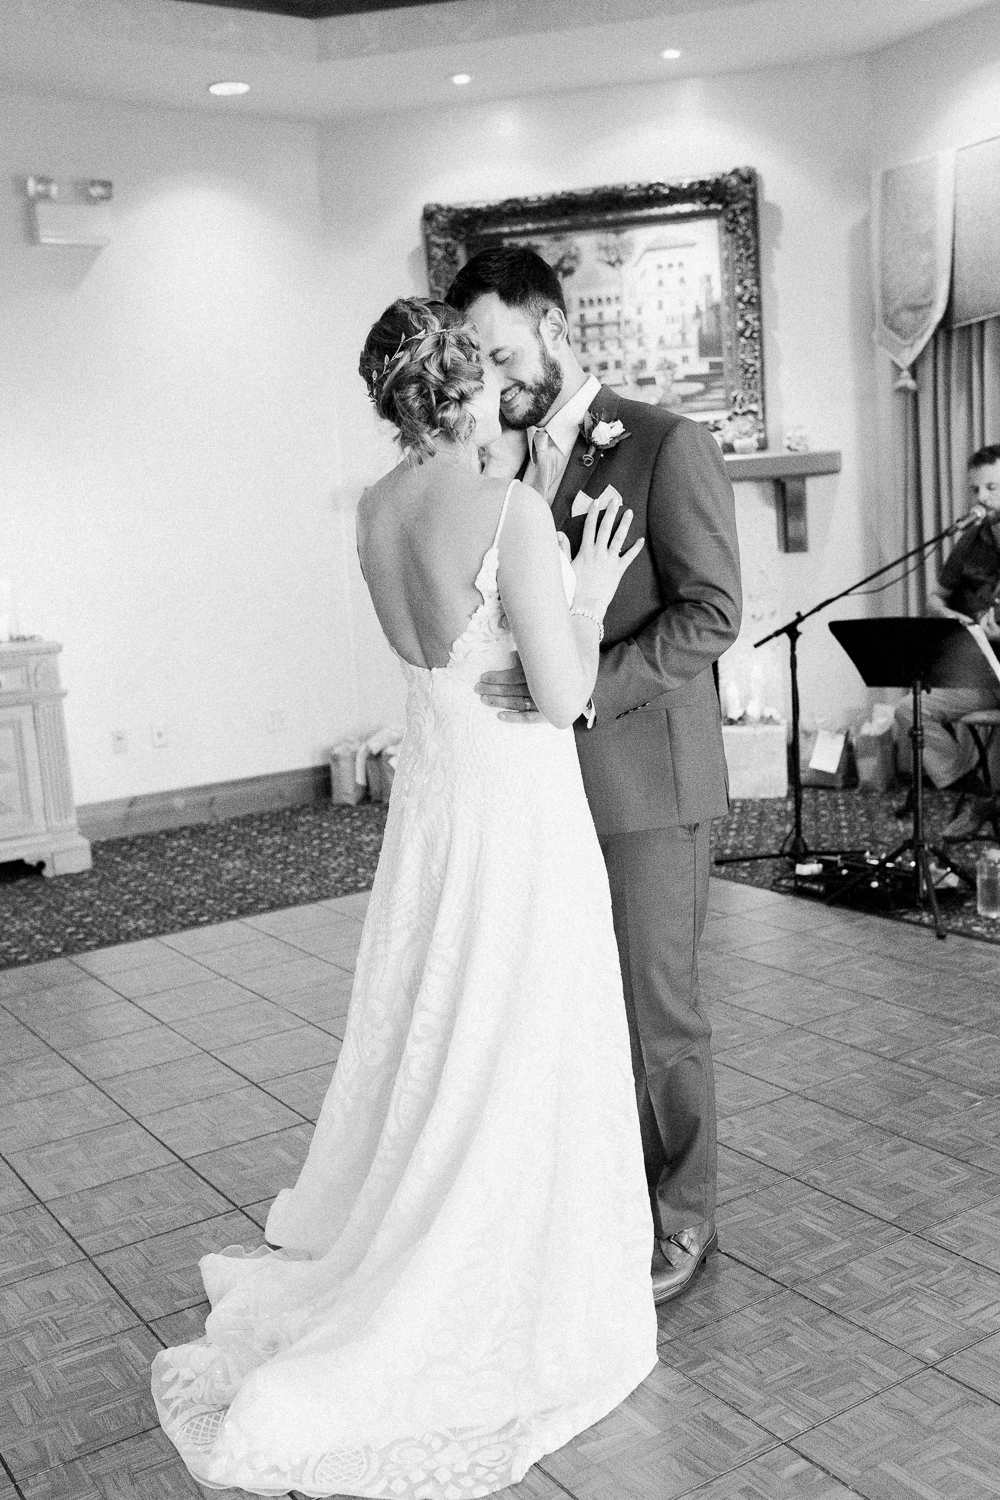 B&W image of bride and groom's first dance in Serenata Beach Club wedding